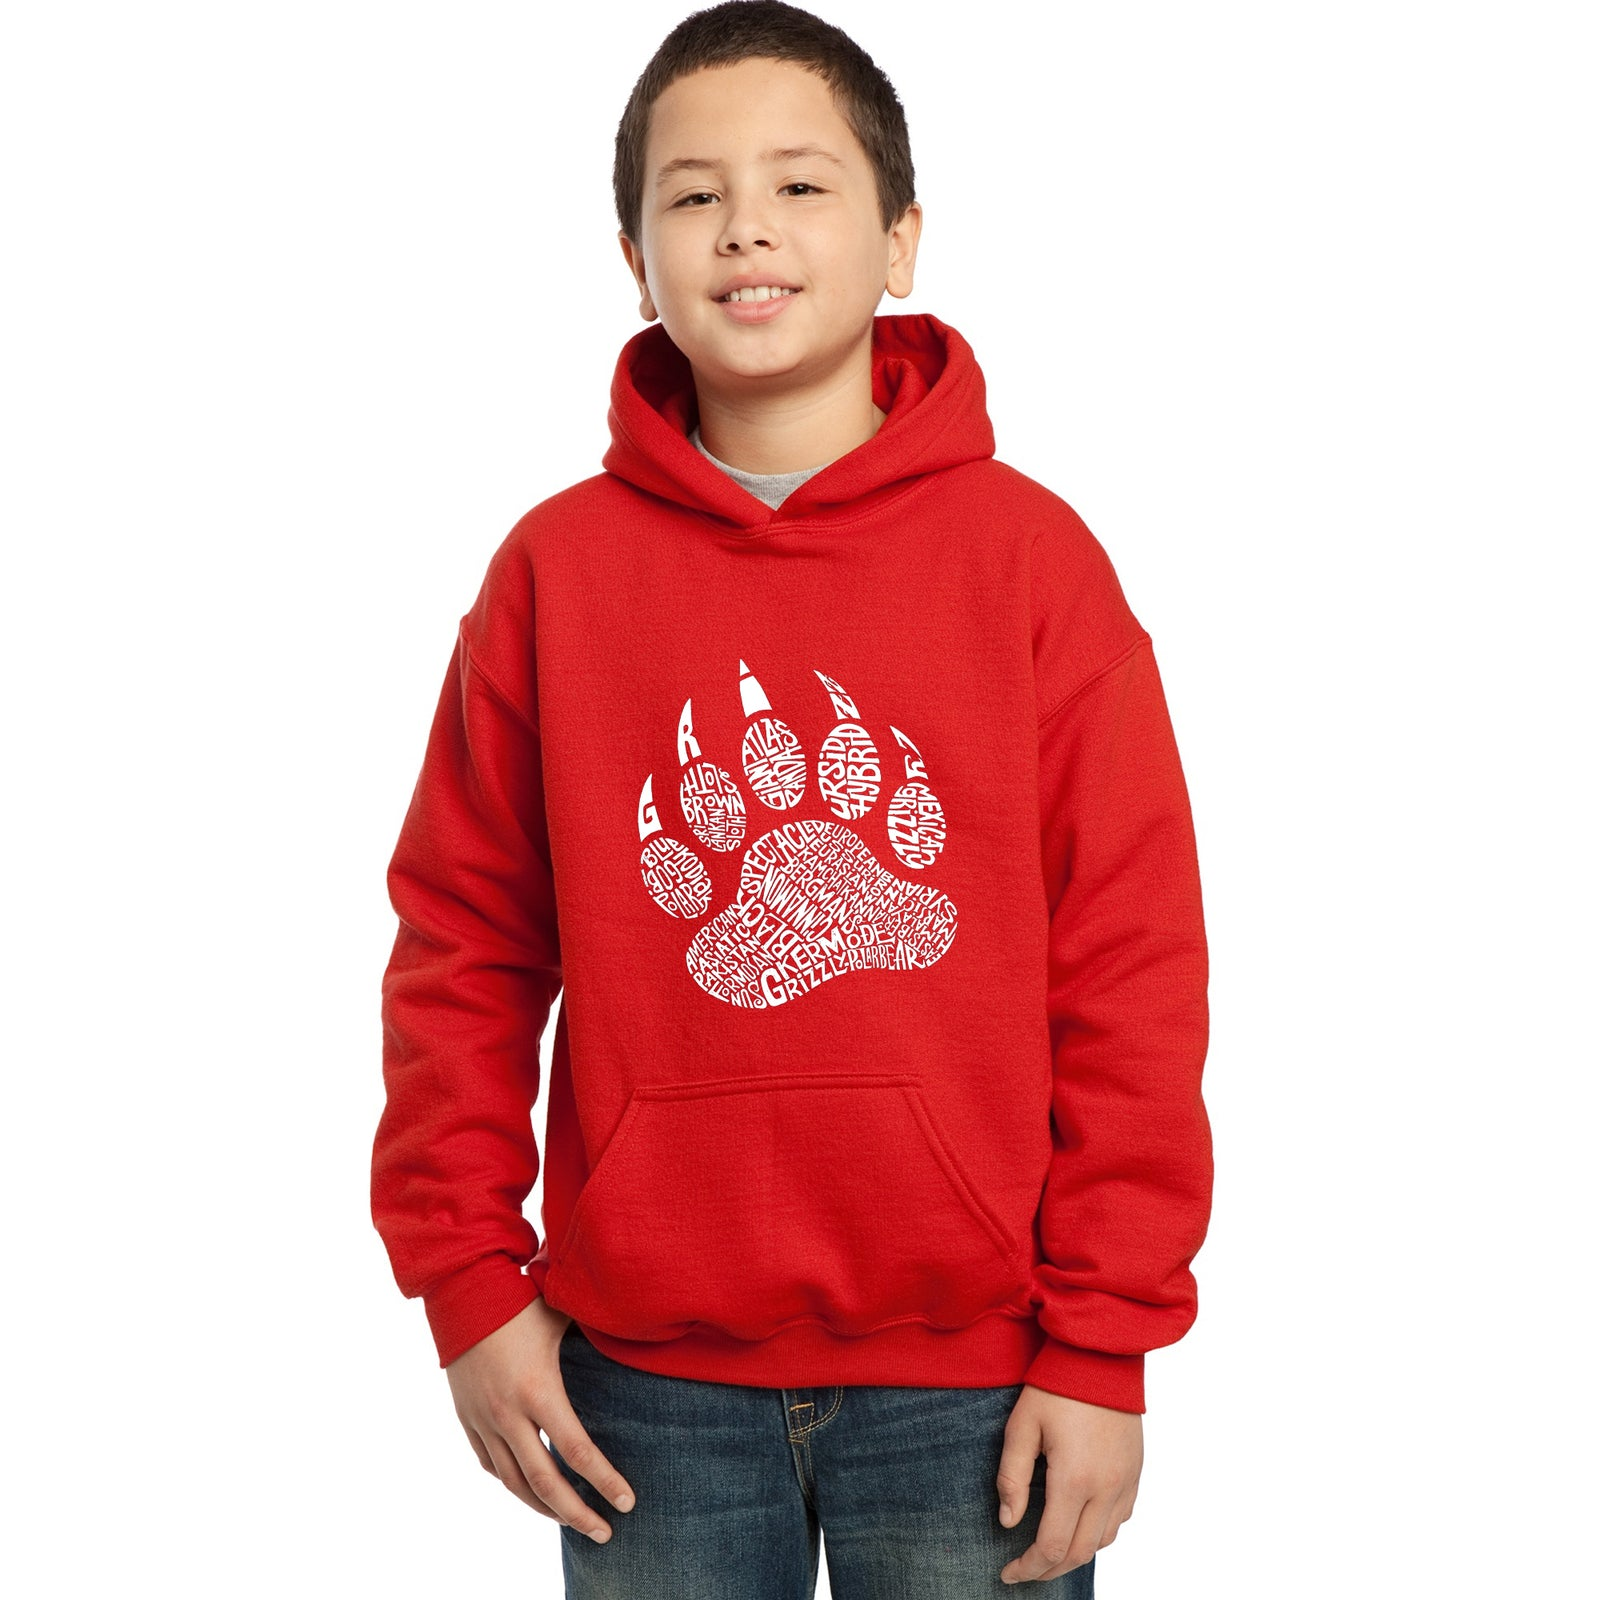 Boy's Word Art Hooded Sweatshirt - Types of Bears